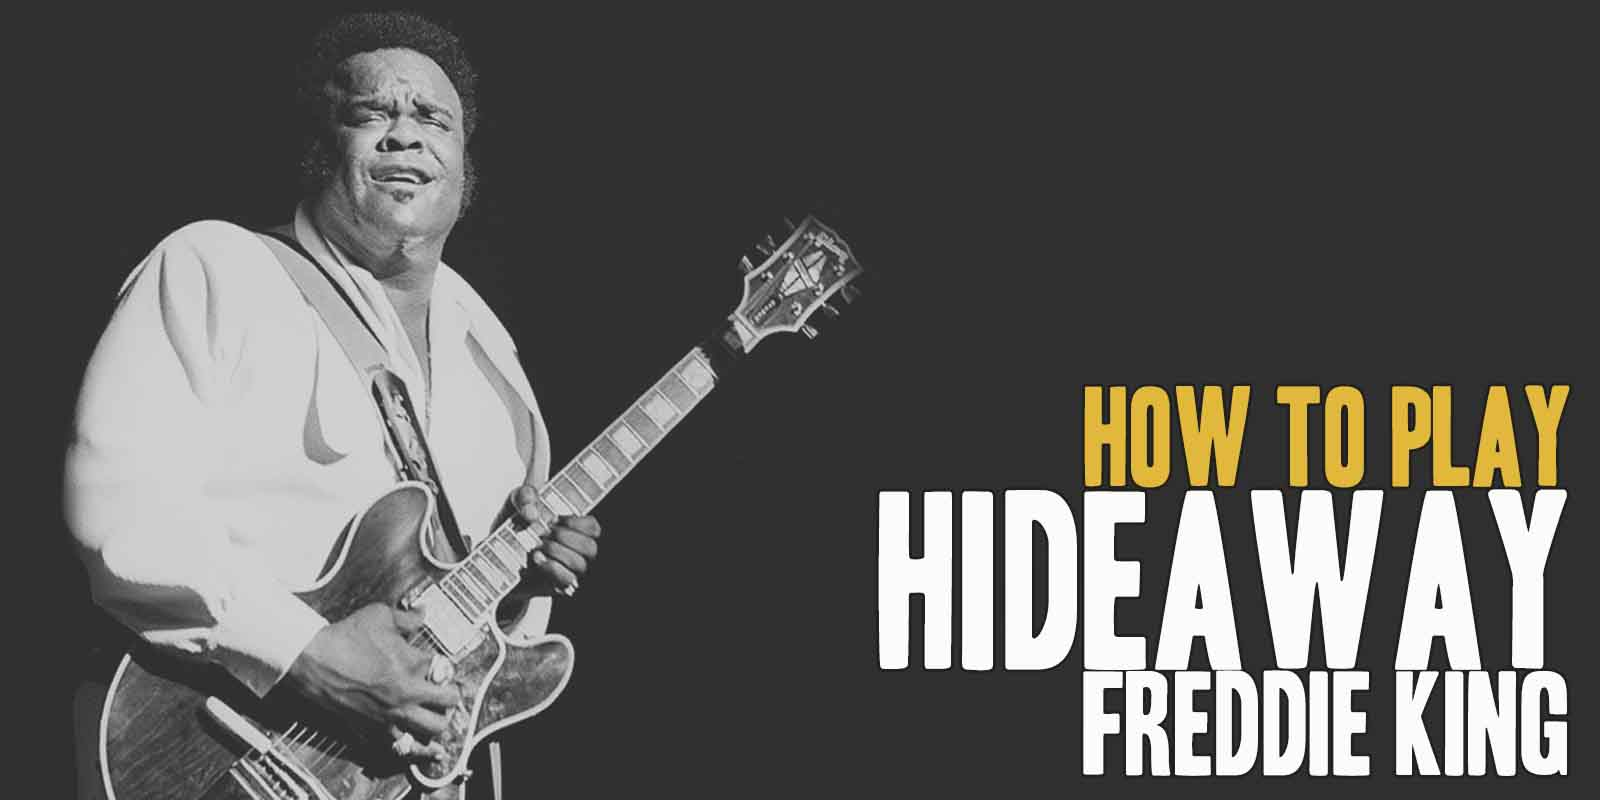 How To Play Hideaway (Freddie King) Burninguitar show you how to play Hideaway by Freddie King. A great song of  Blues Guitar. Music Score included in pdf and in guitar pro tab. Freddie King Hideaway lesson include 8 videos and music sheets available for download (both Hideaway pdf and Hideaway gpx)